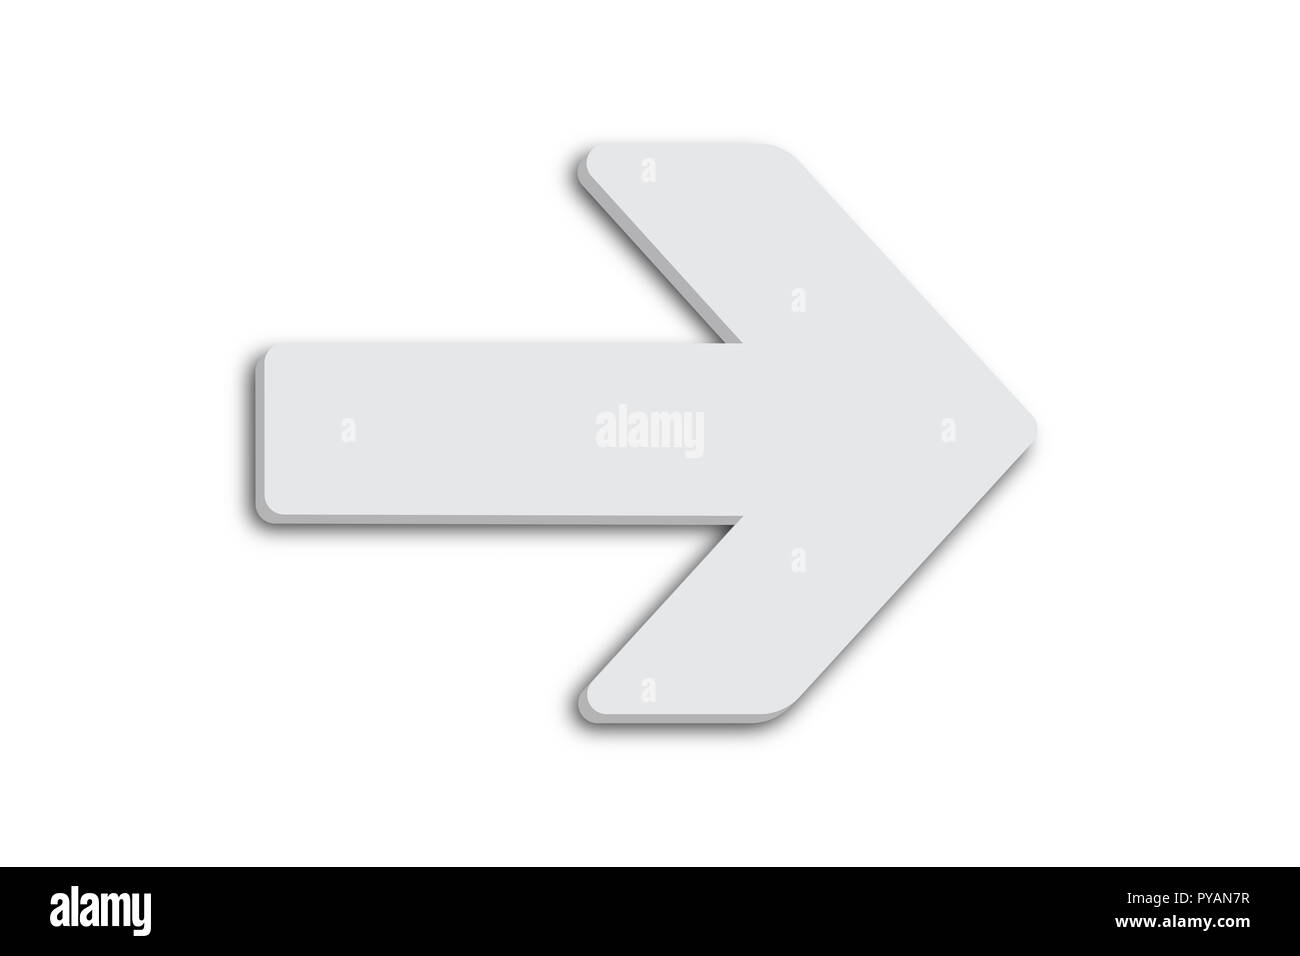 White arrow sign symbol in minimalist white grey color 3D design shape and isolated on simple minimal clean seamless white background. Stock Photo